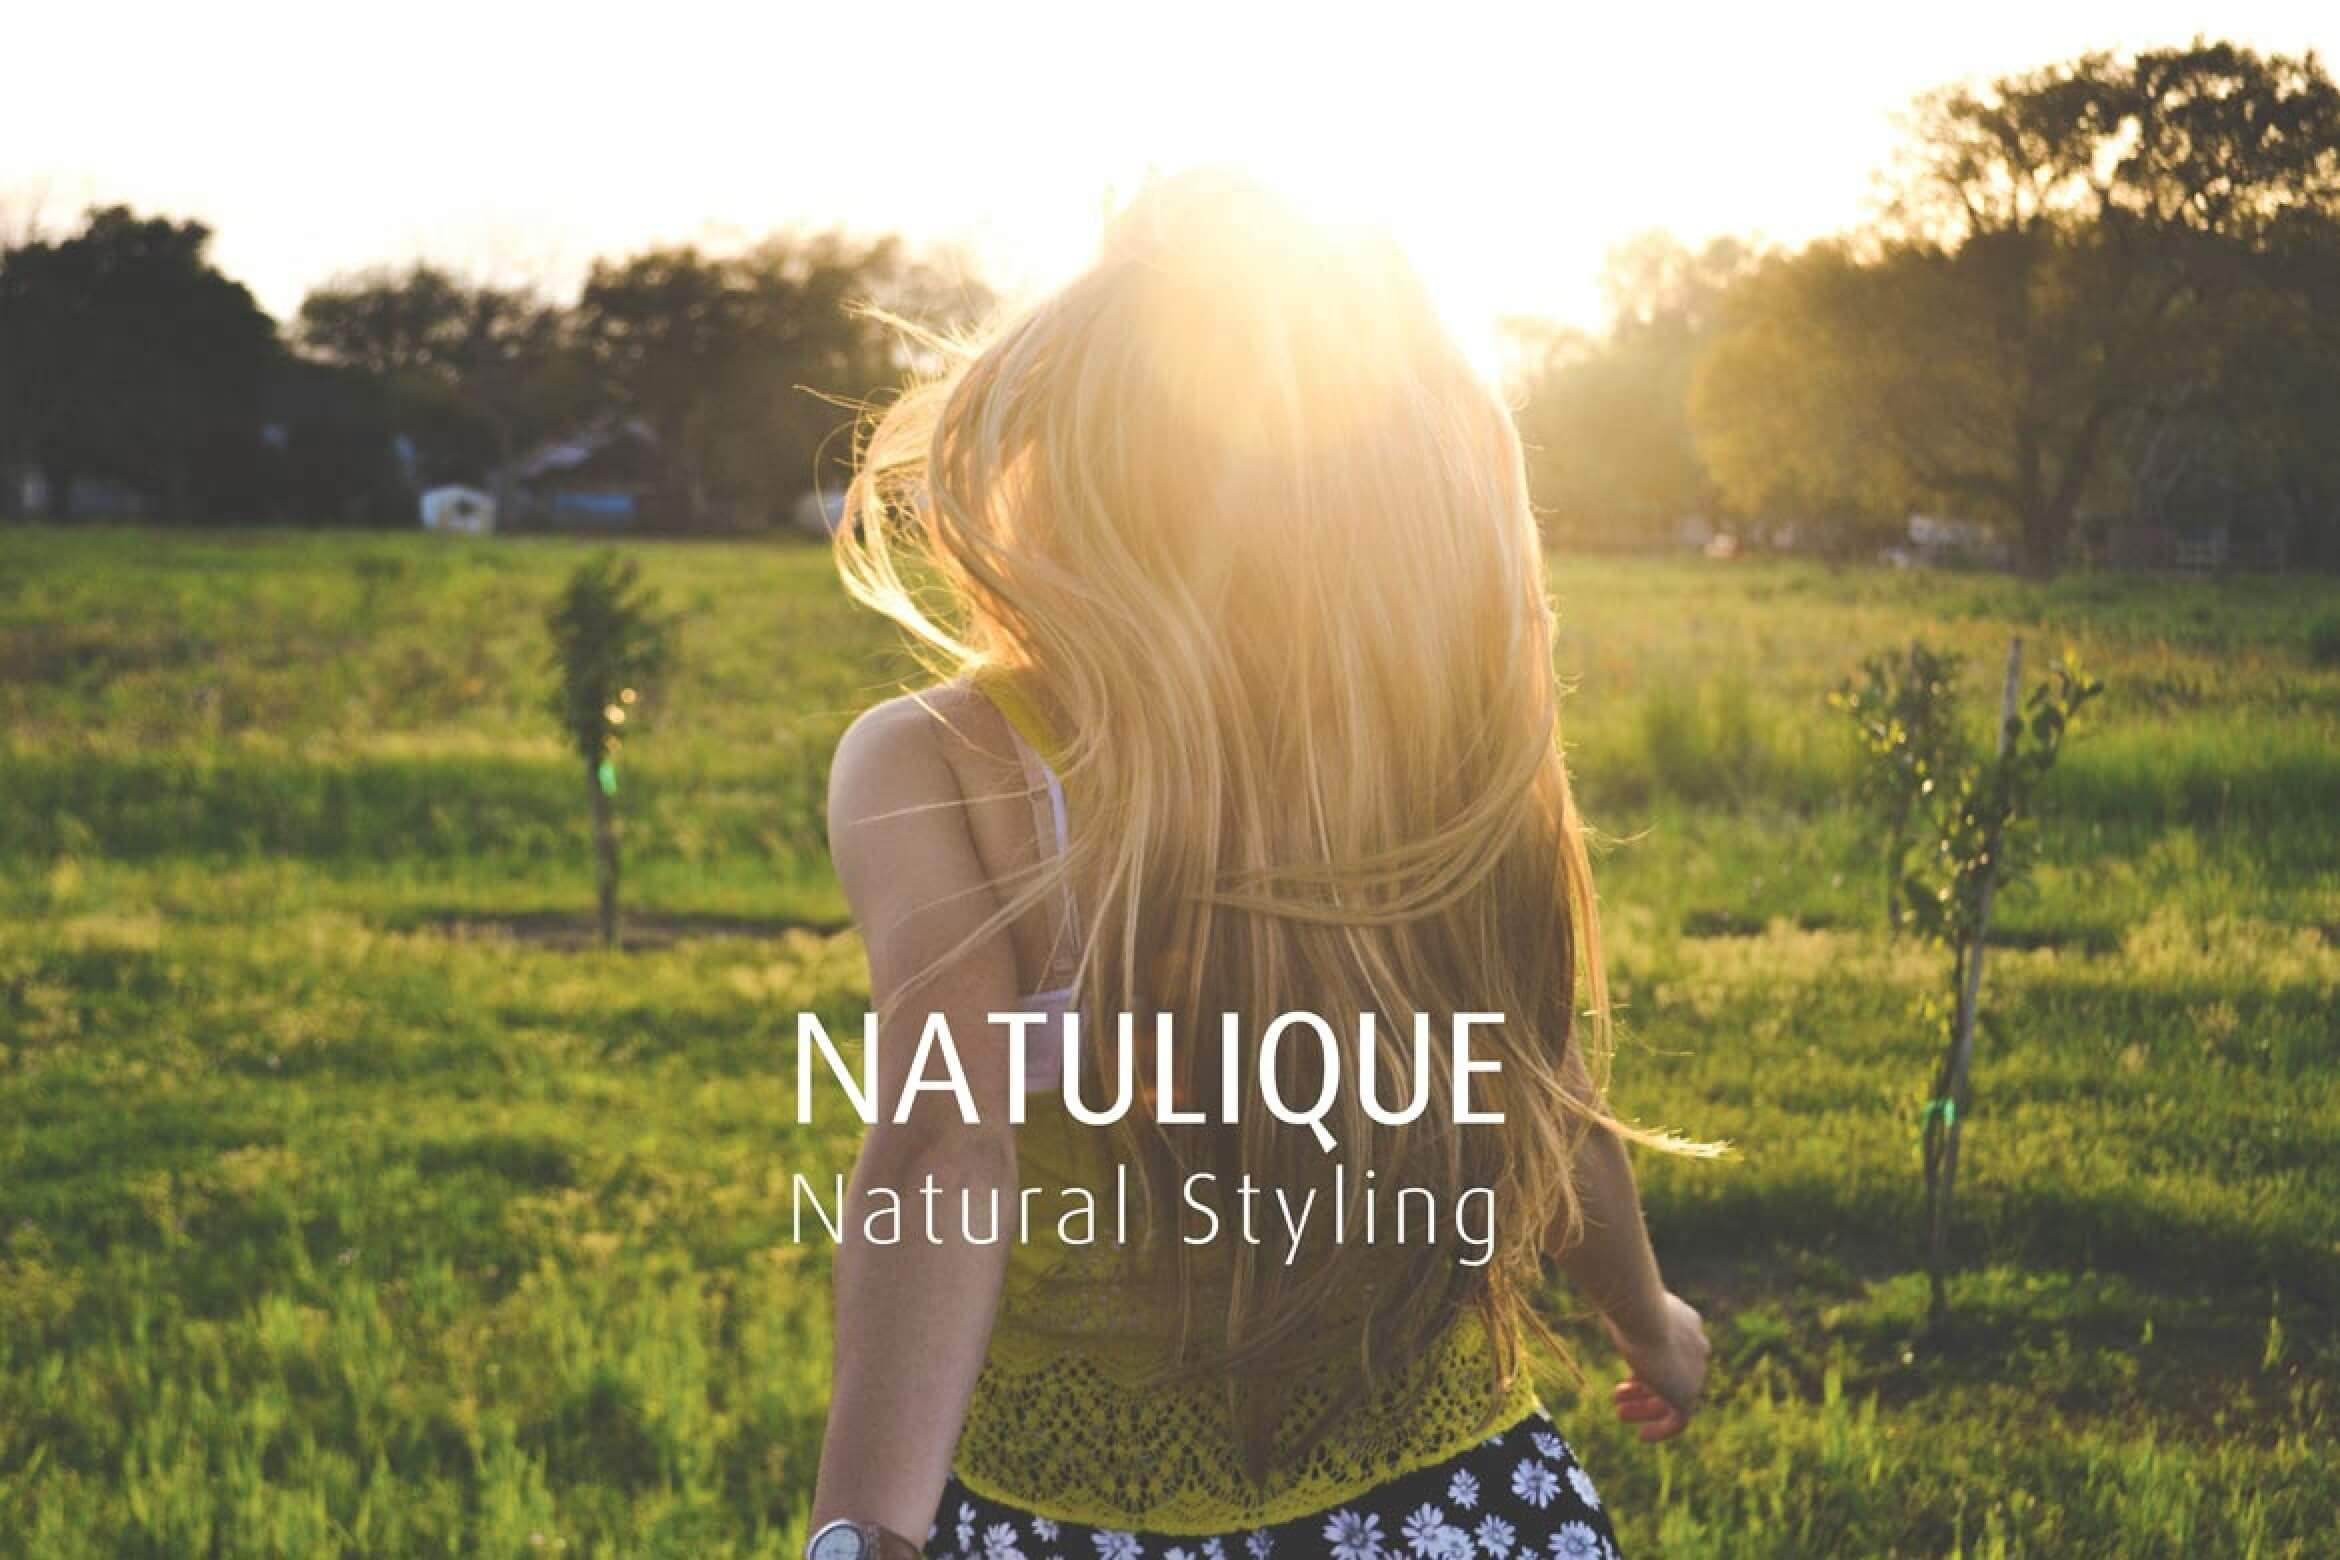 How To Style Hair Without Heat With Natulique Certified Organic Product